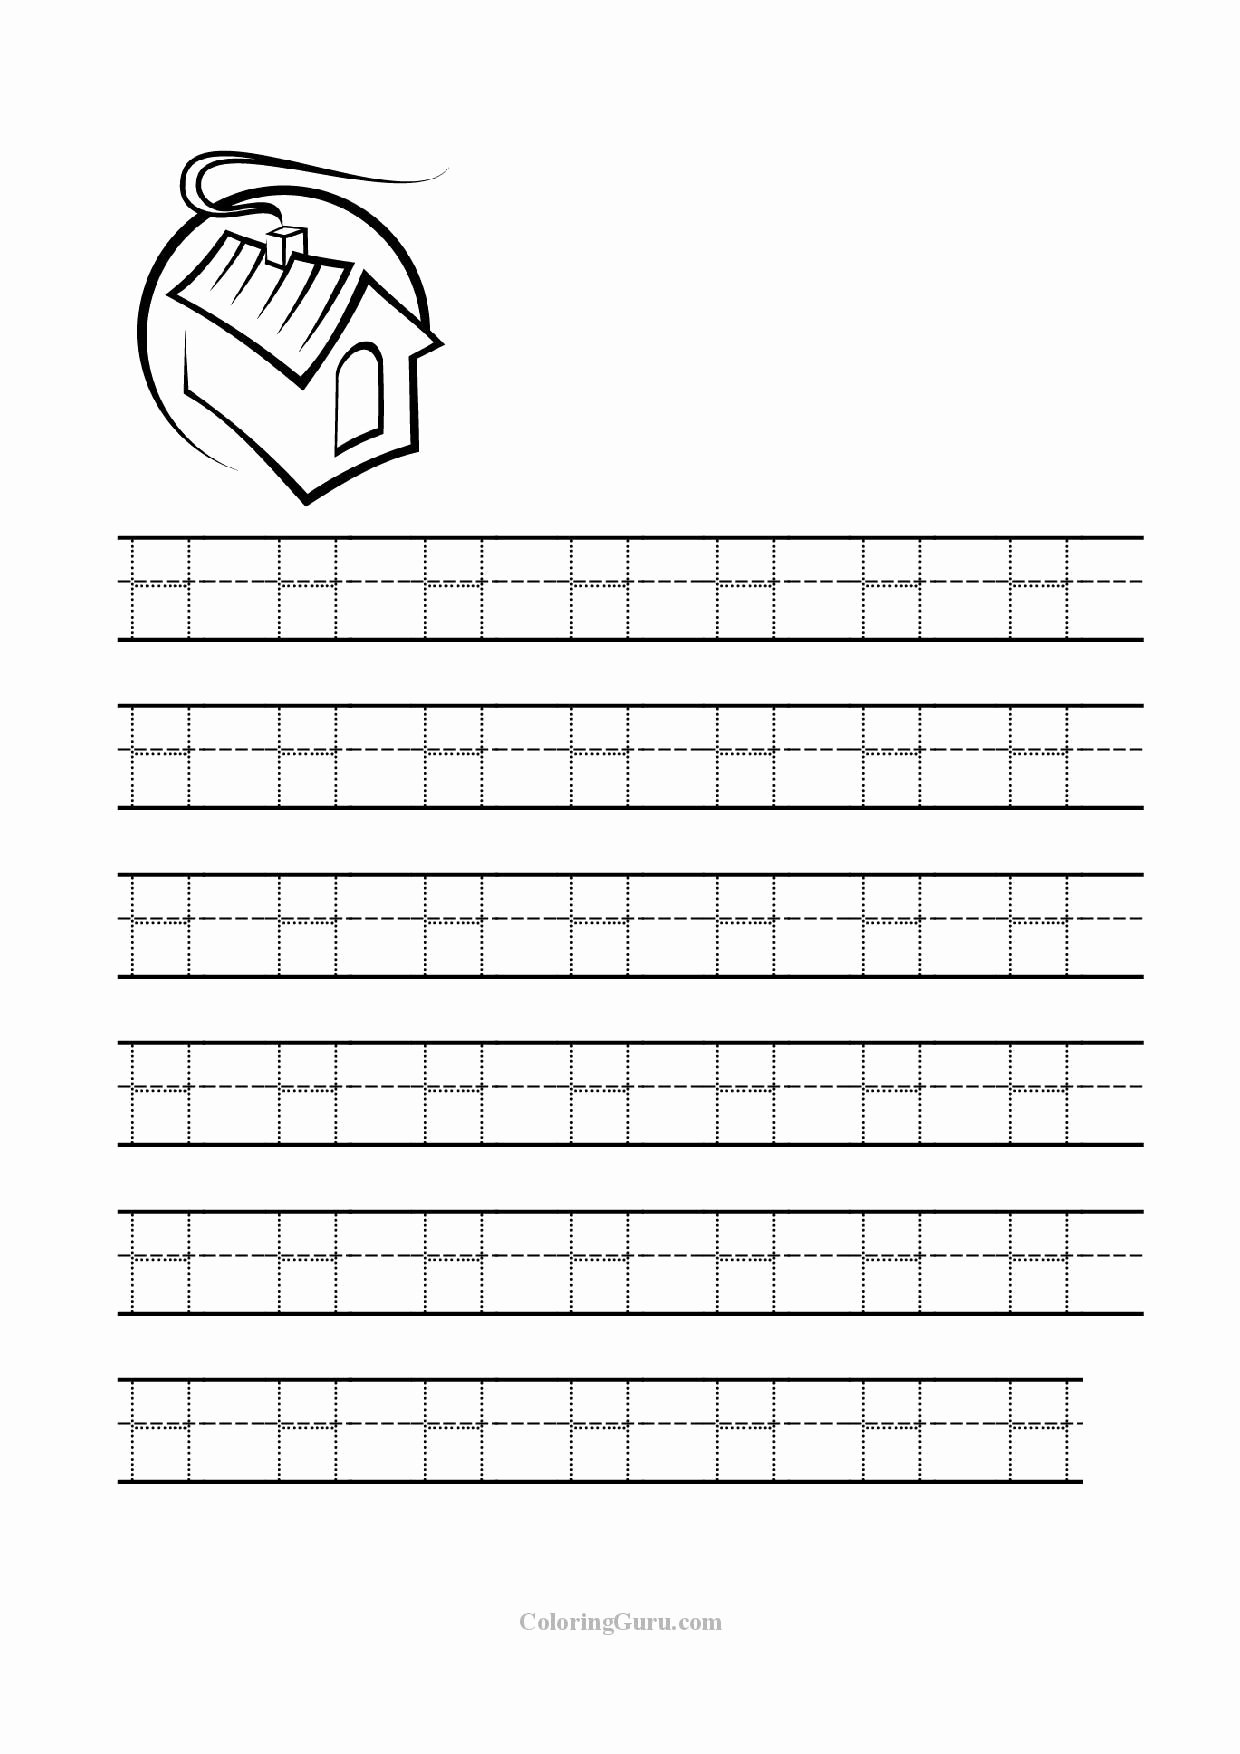 Letter H Tracing Worksheets Preschool top Free Printable Tracing Letter H Worksheets for Preschool